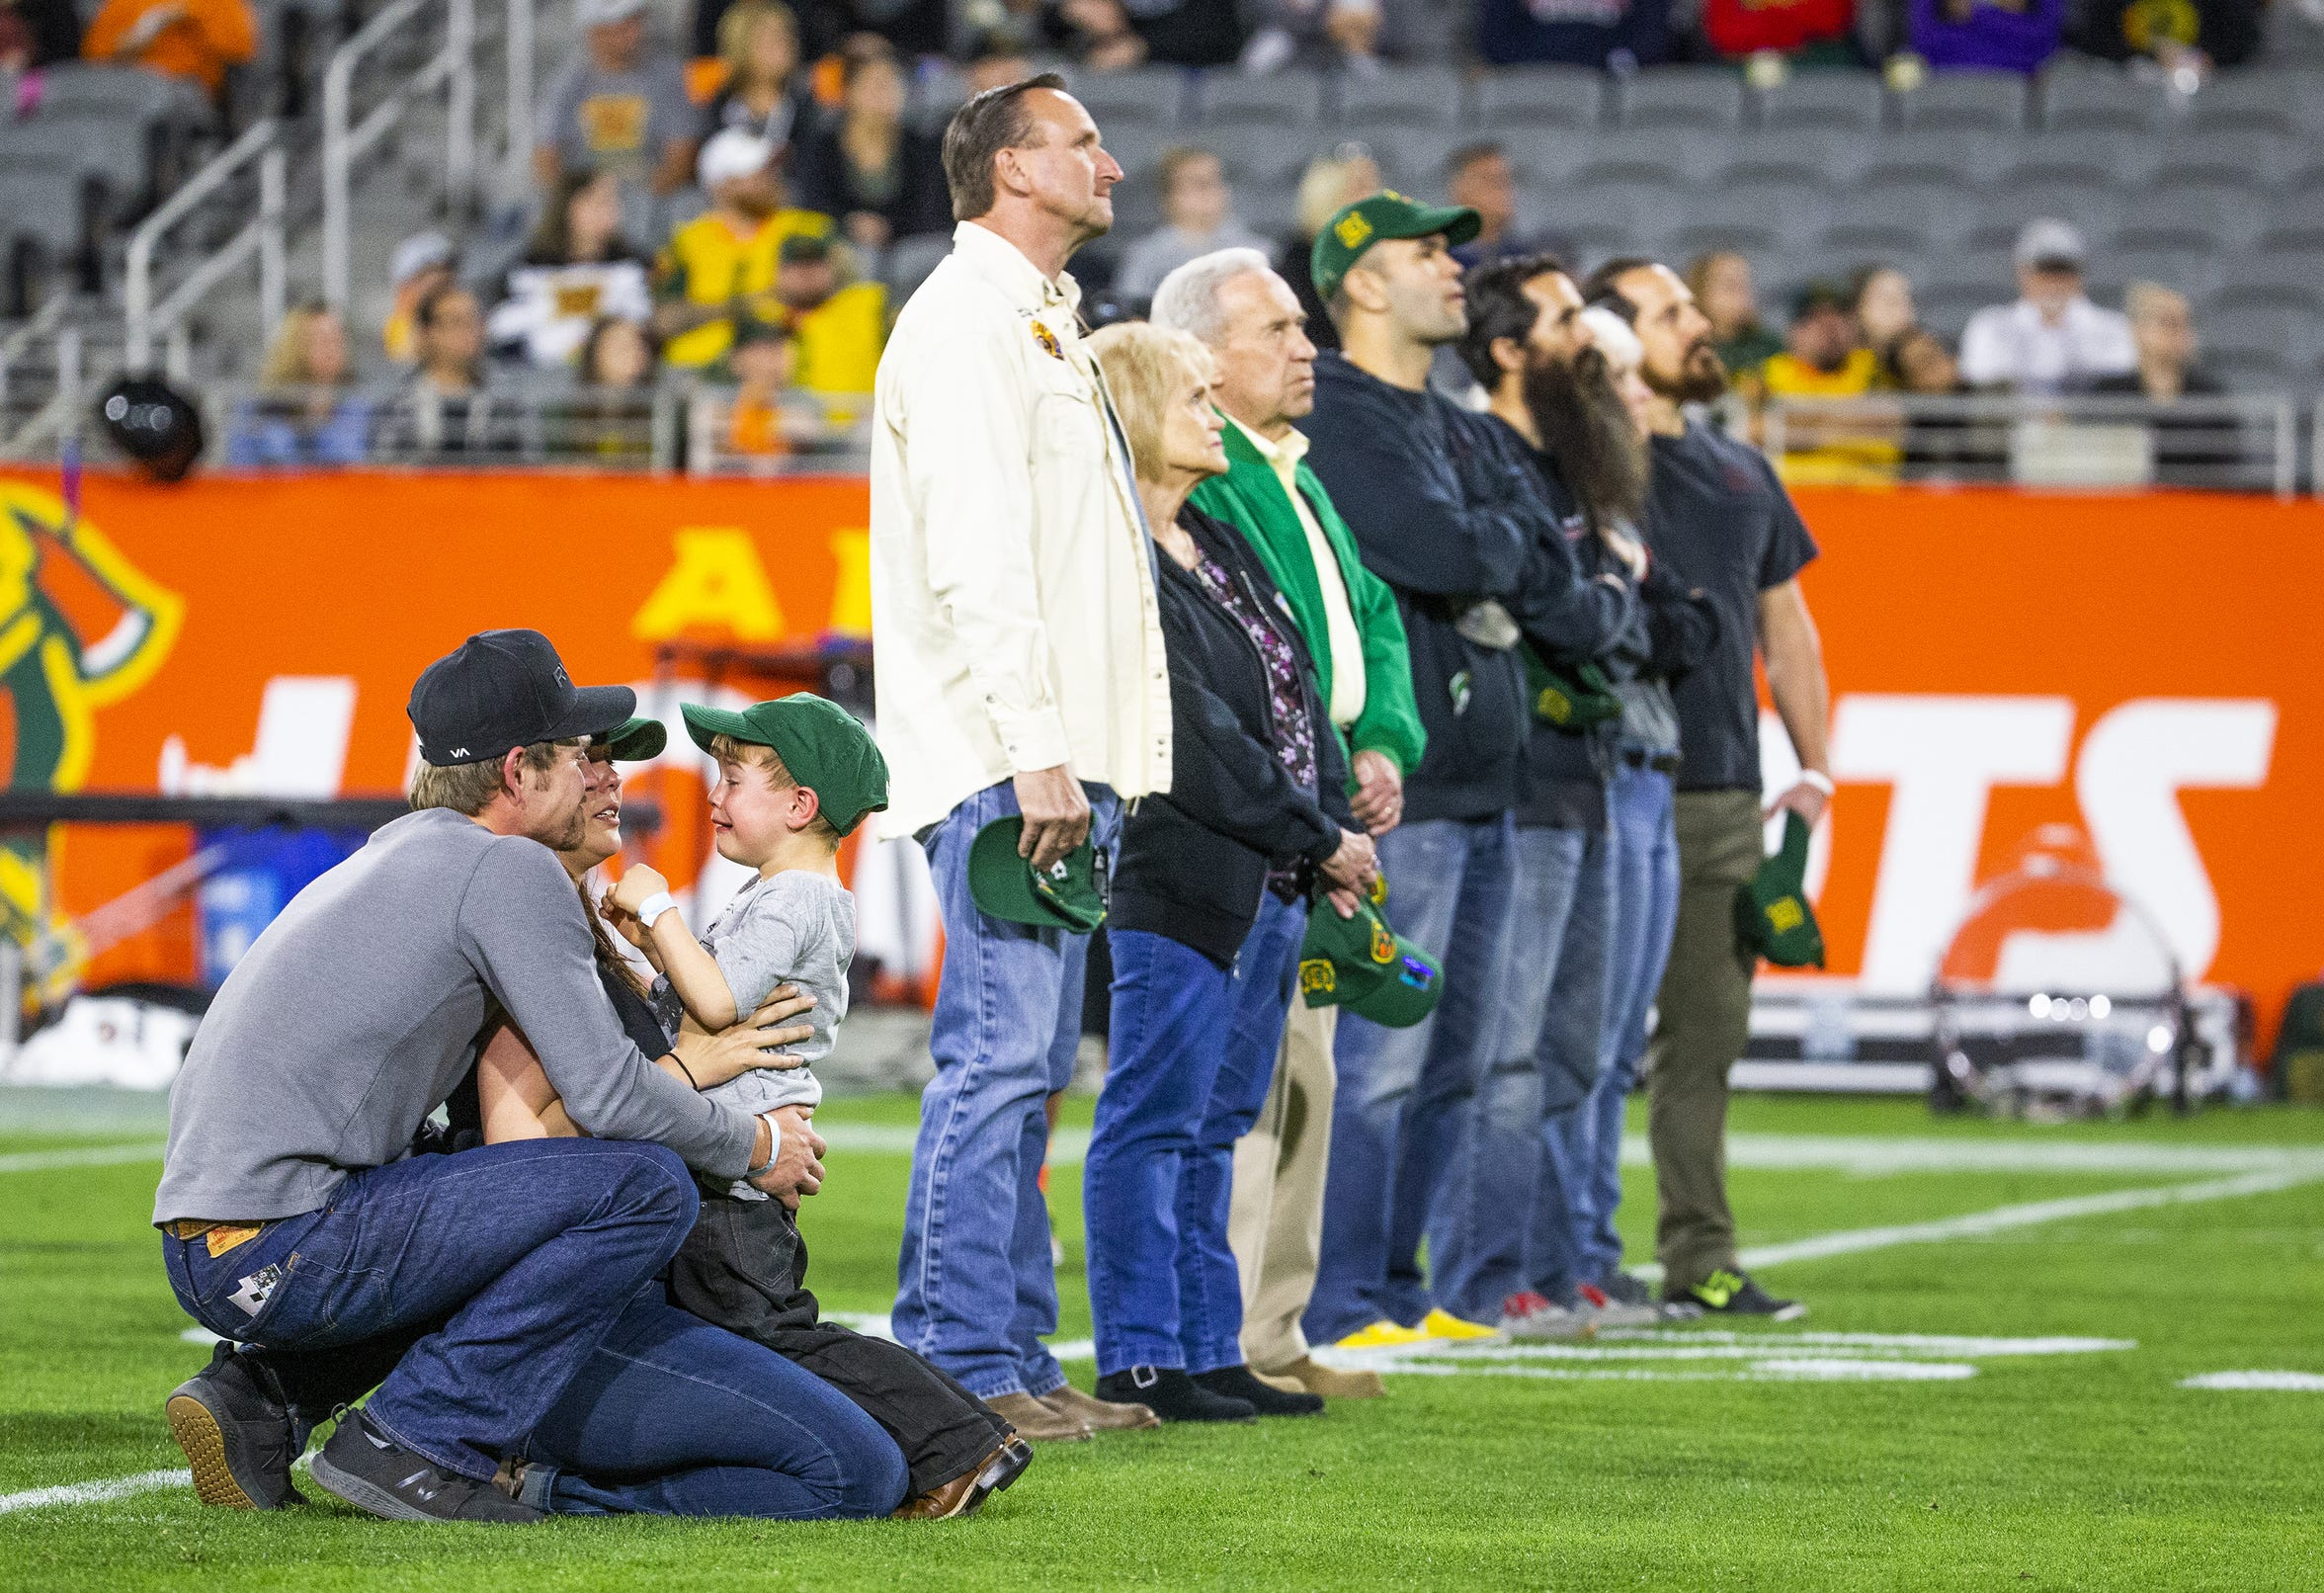 Amanda Misner-Parker holds her son, Jaxon, with her husband, D.J. Parker, as he cries during a tribute to the Granite Mountain Hotshots by the Arizona Hotshots last month.